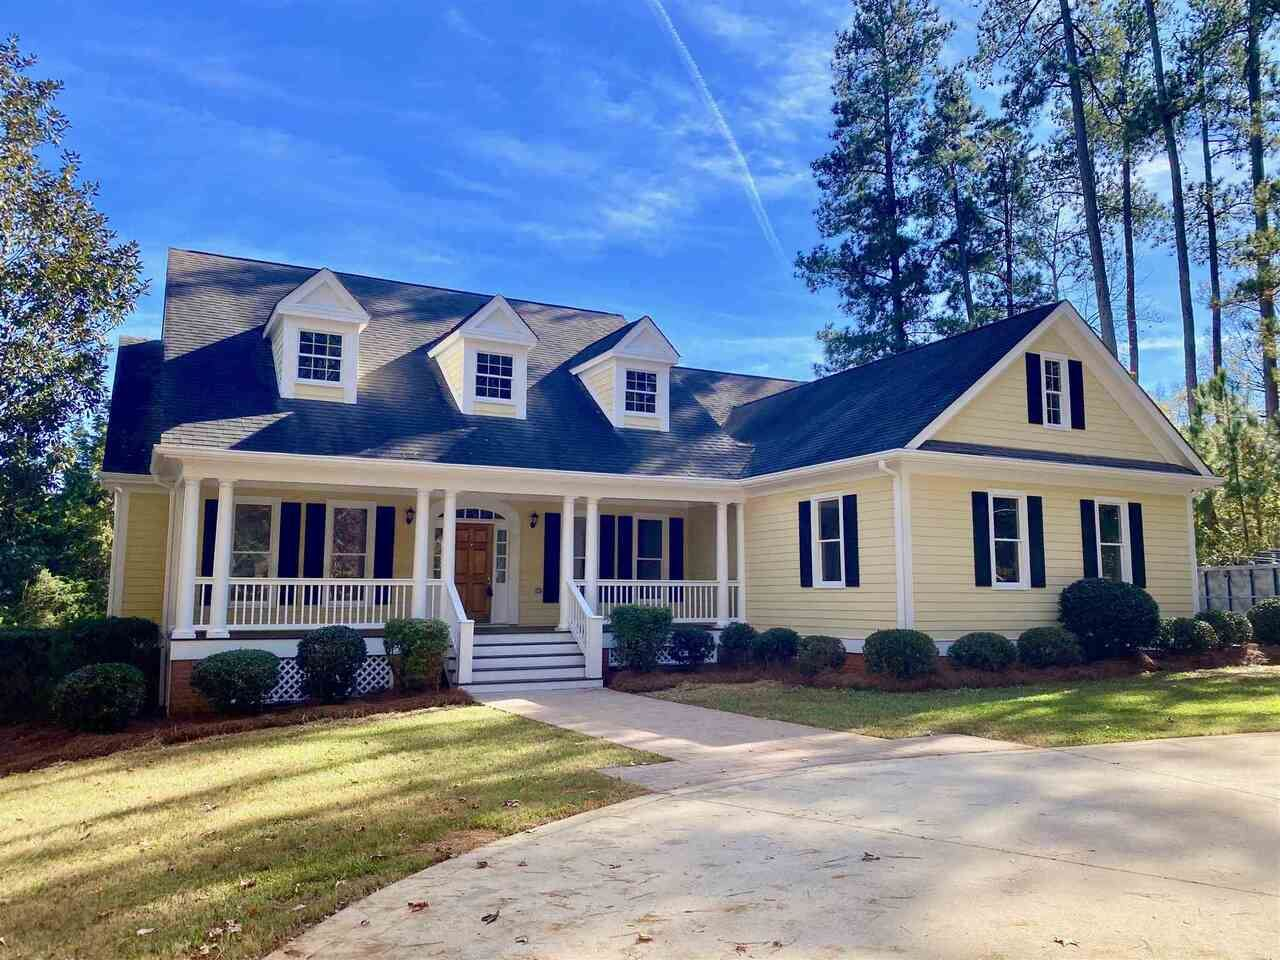 156 Waters Edge Dr, Eatonton, GA 31024 - MLS#: 8899116